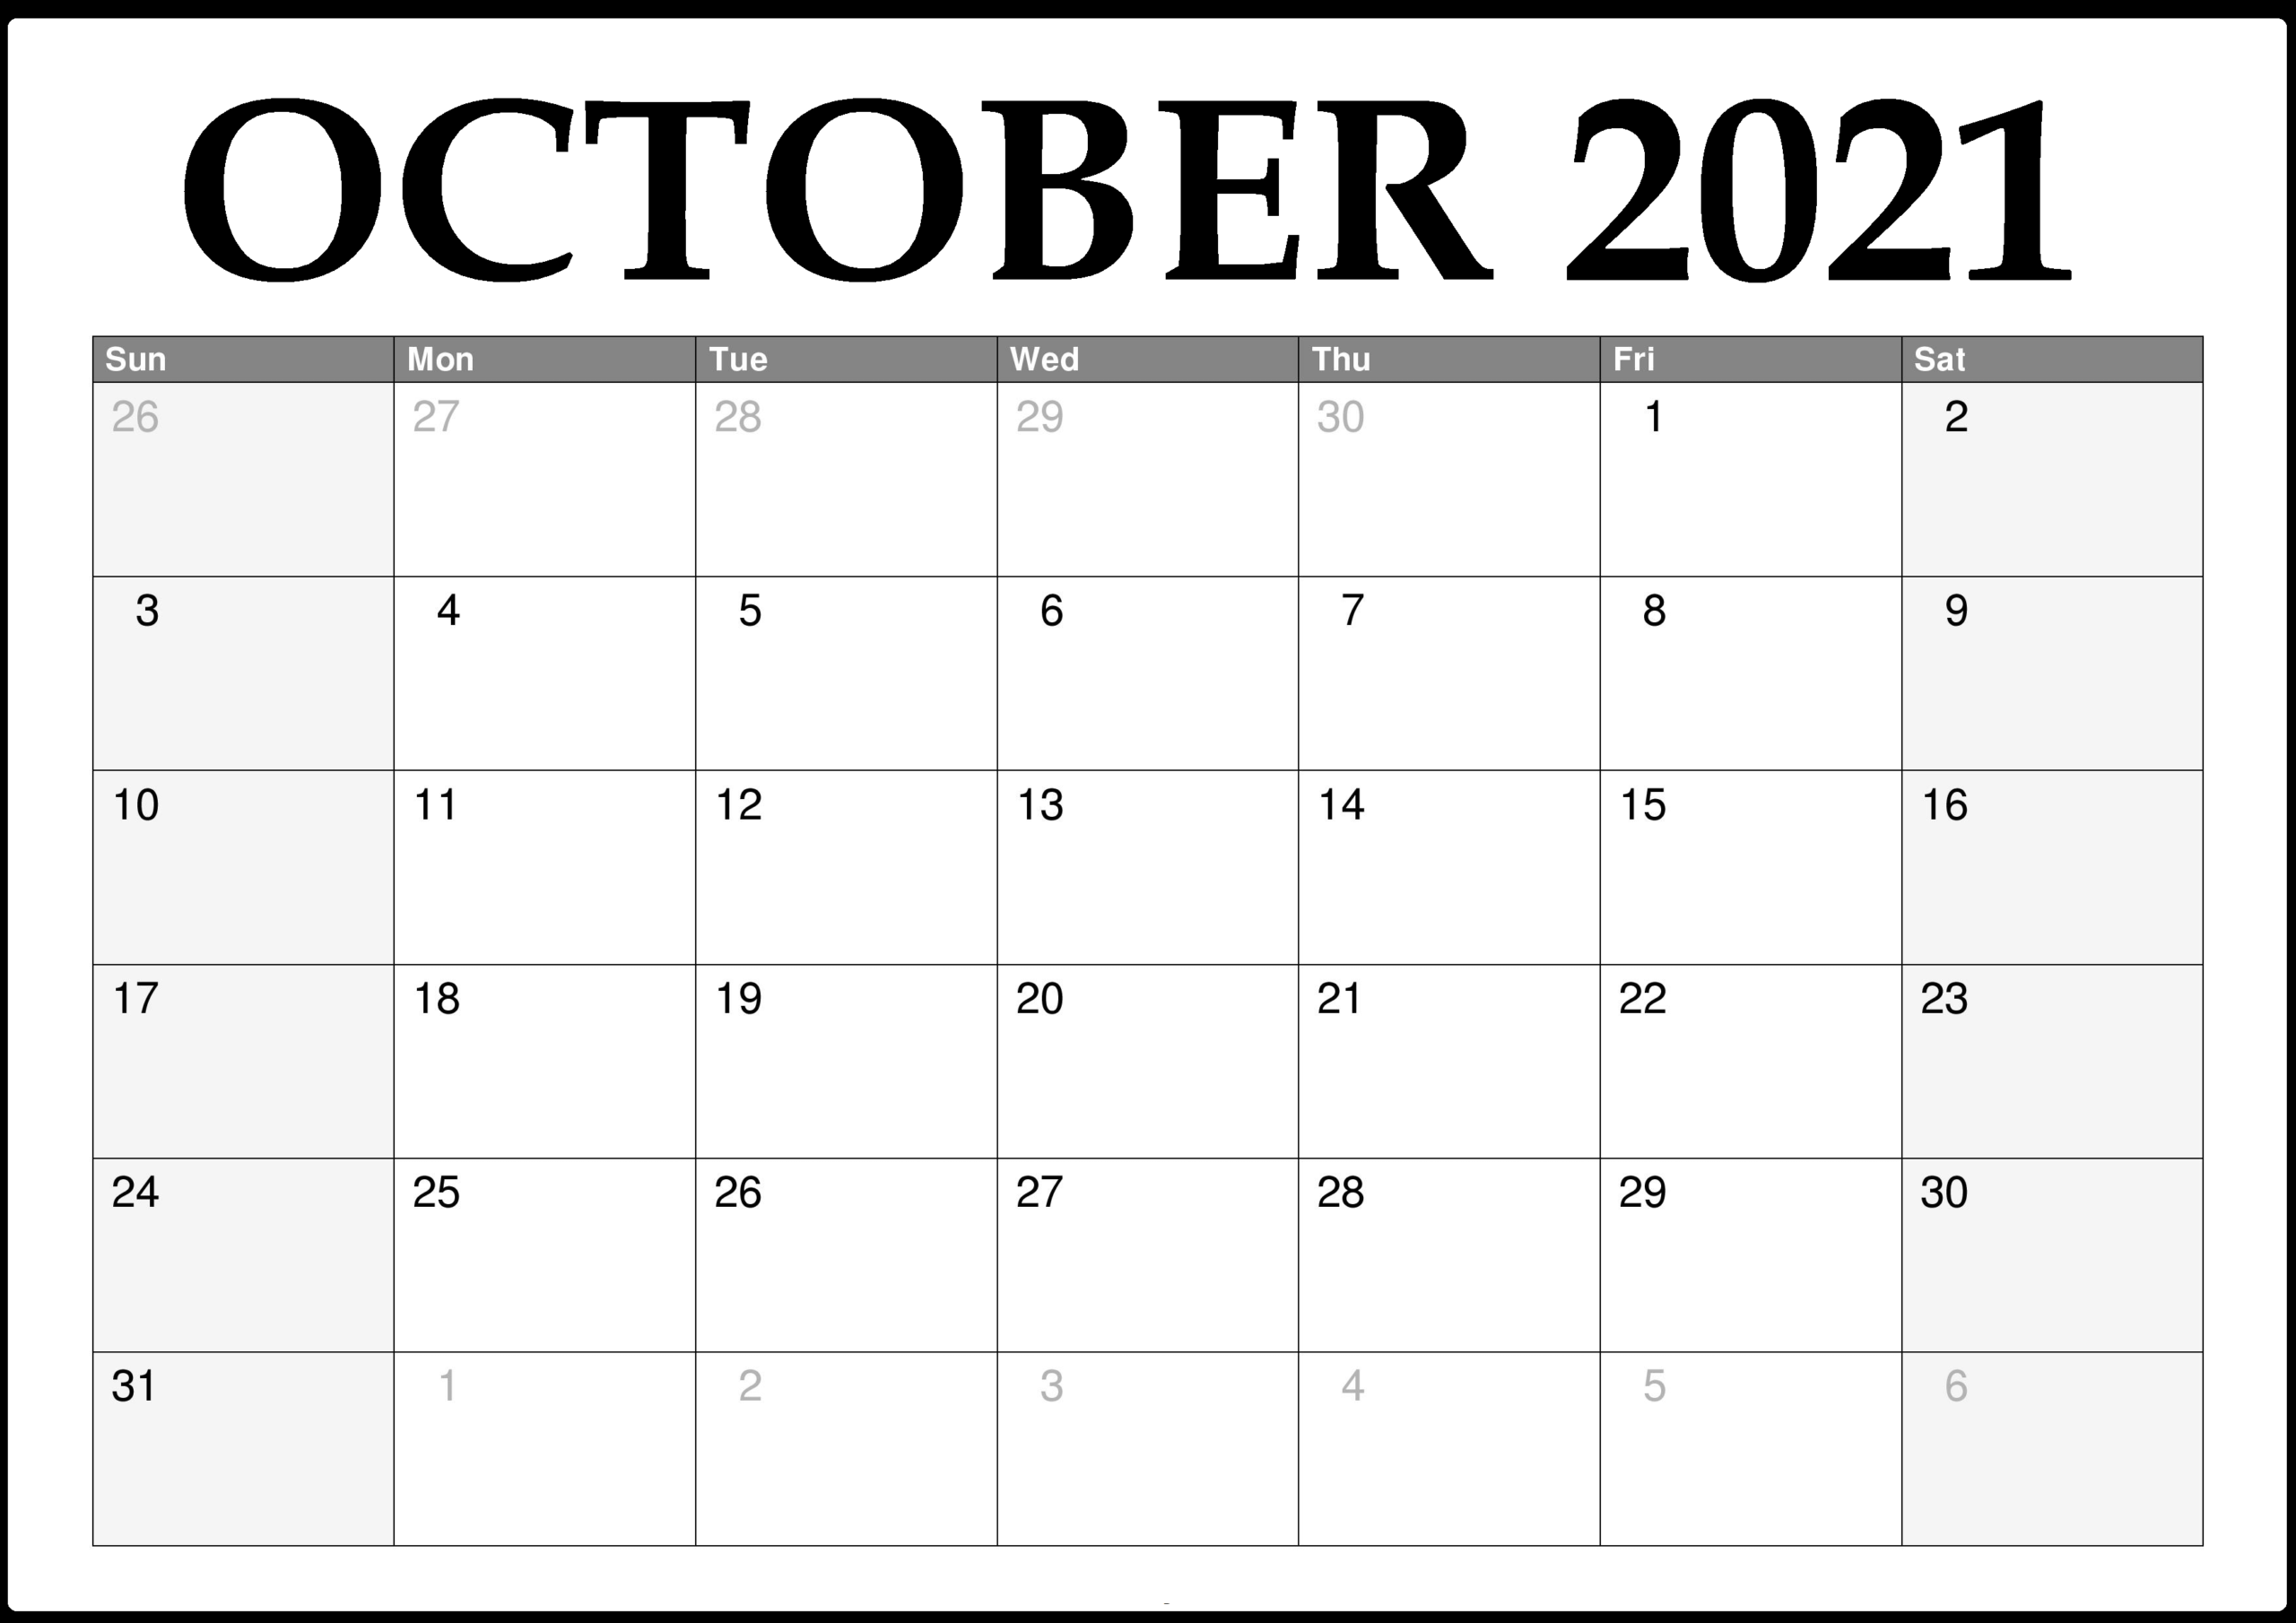 October 2021 Calendar Printable Template – Pdf, Word, Excel